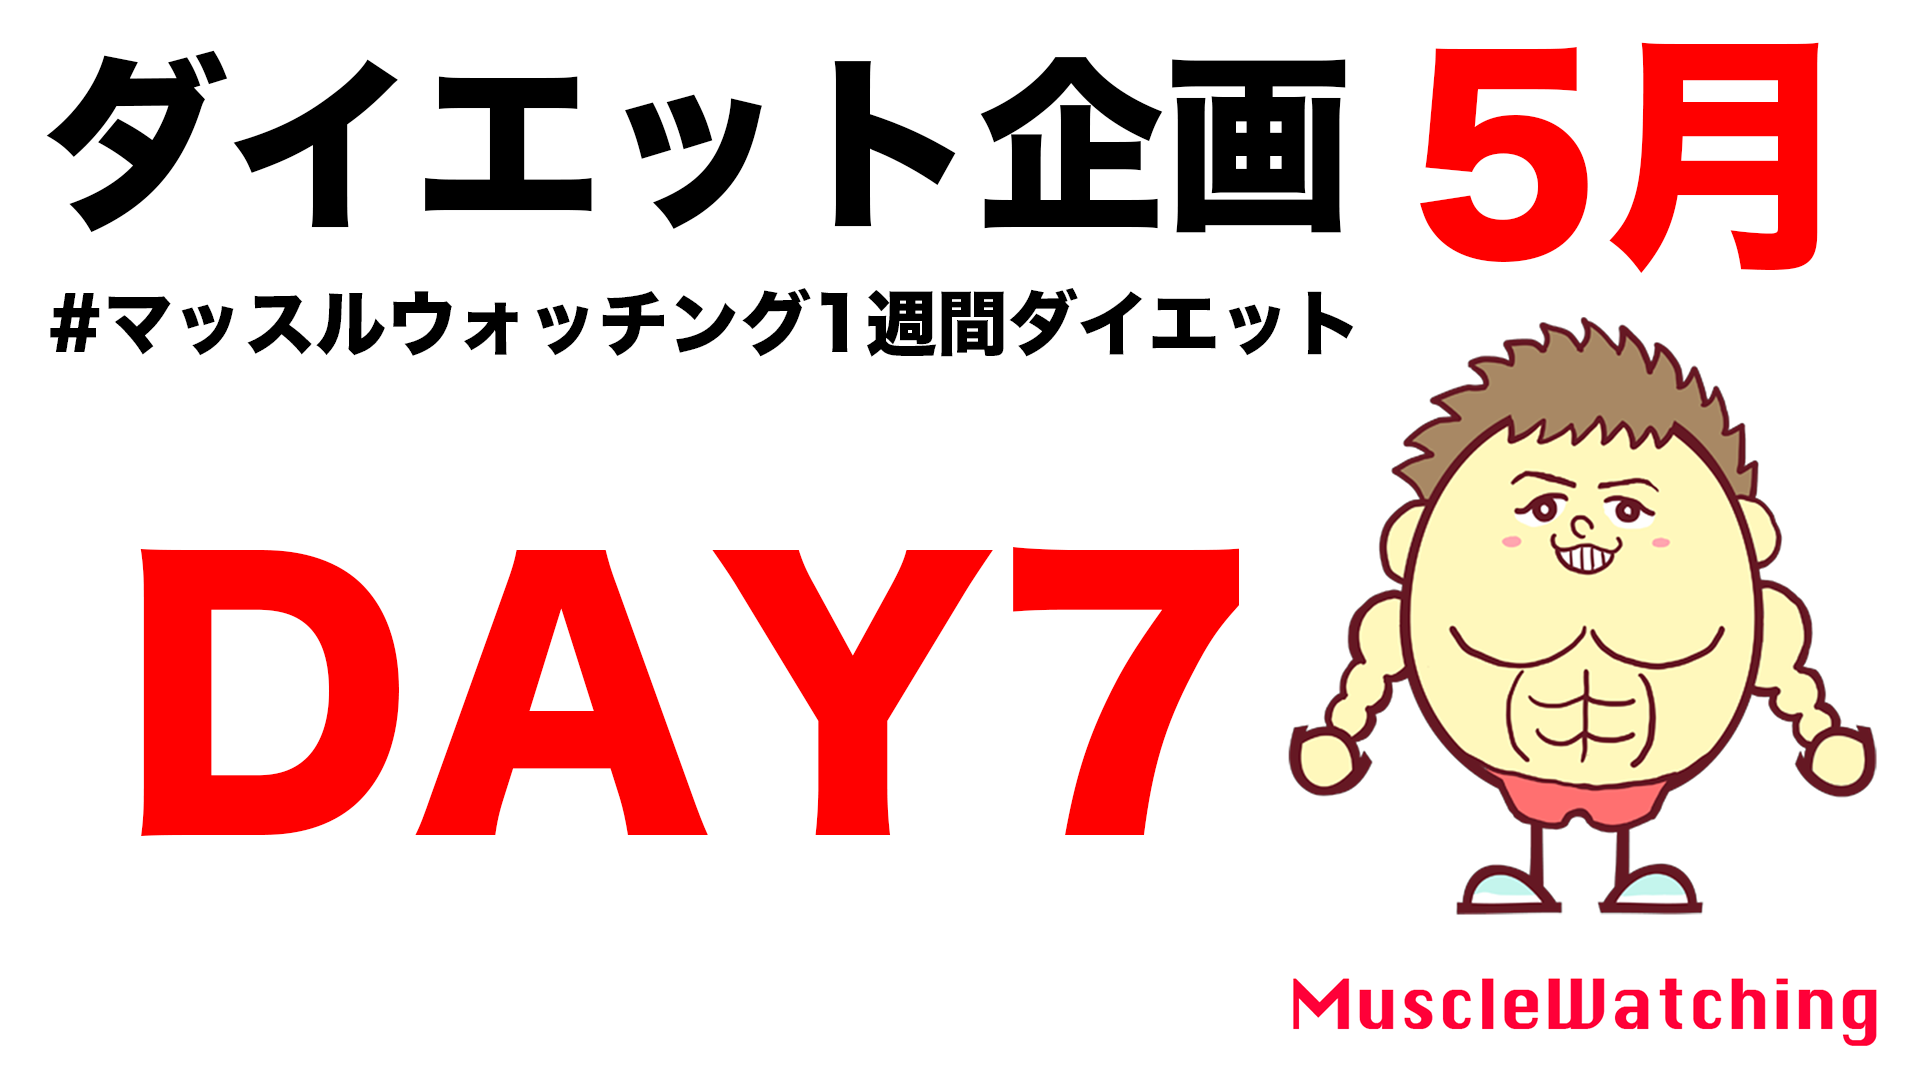 【DAY7】女性限定1週間ダイエット企画 5月| Muscle Watching